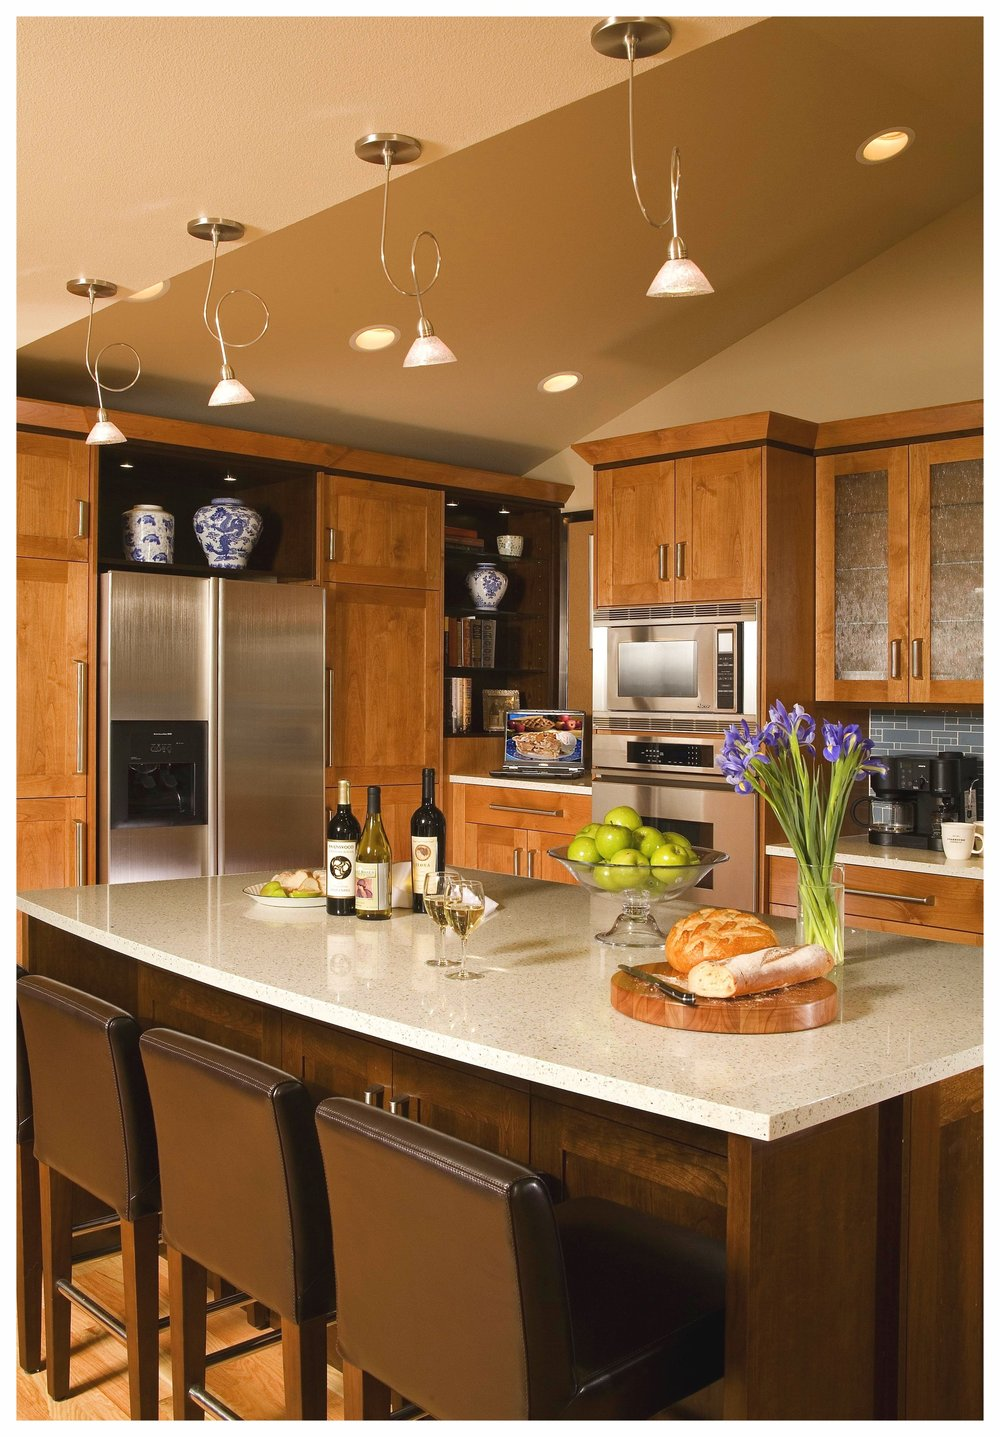 Bellevue Wilburton Park Transitional Kitchen 4.jpg